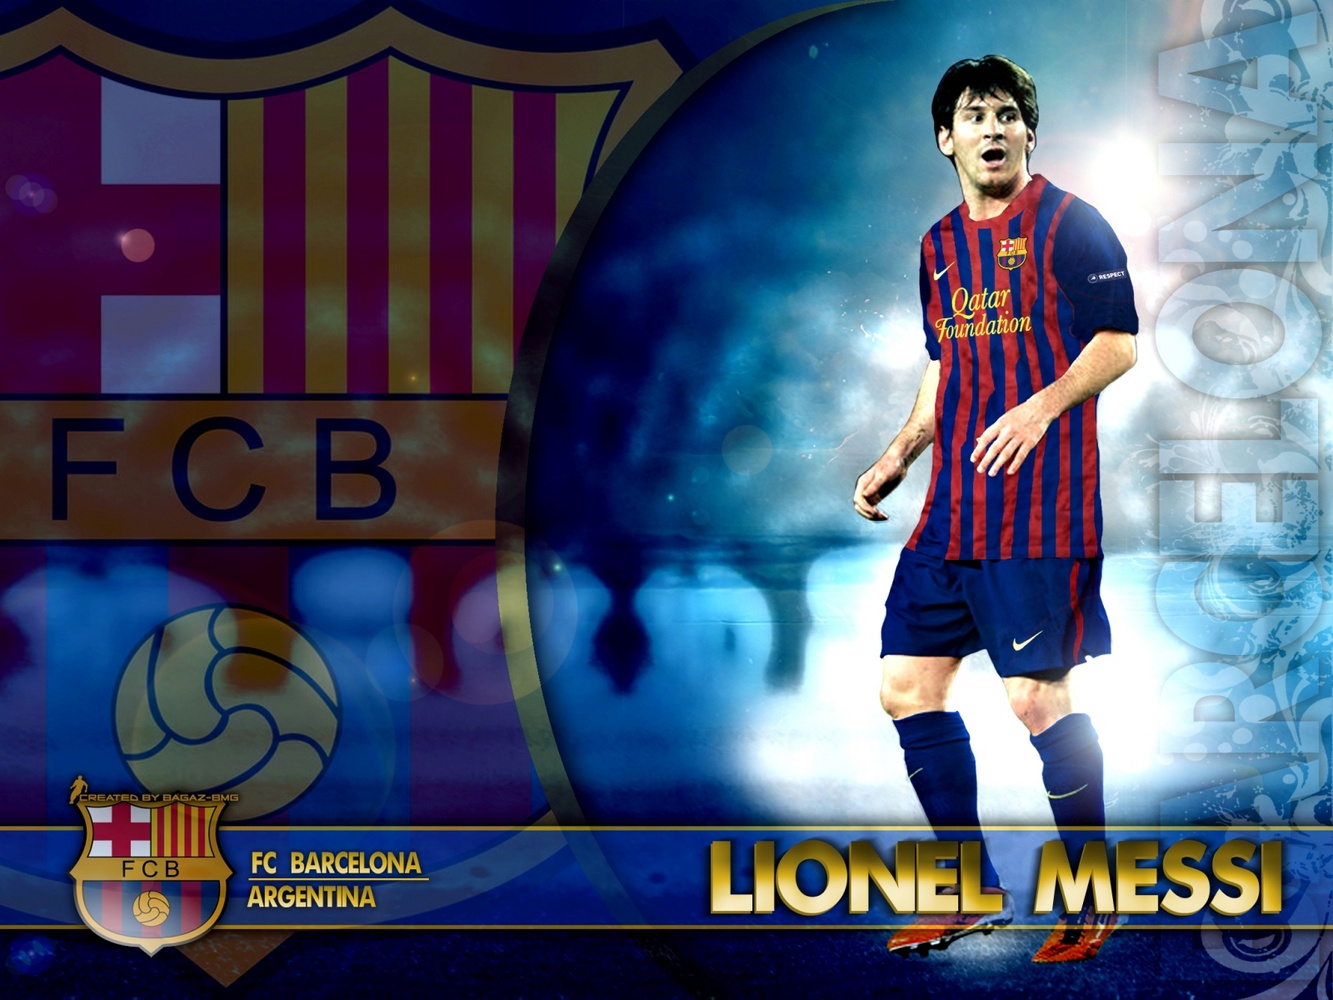 Lionel Messi Wallpaper Lionel Messi Wallpaper Messi Barcelona Messi